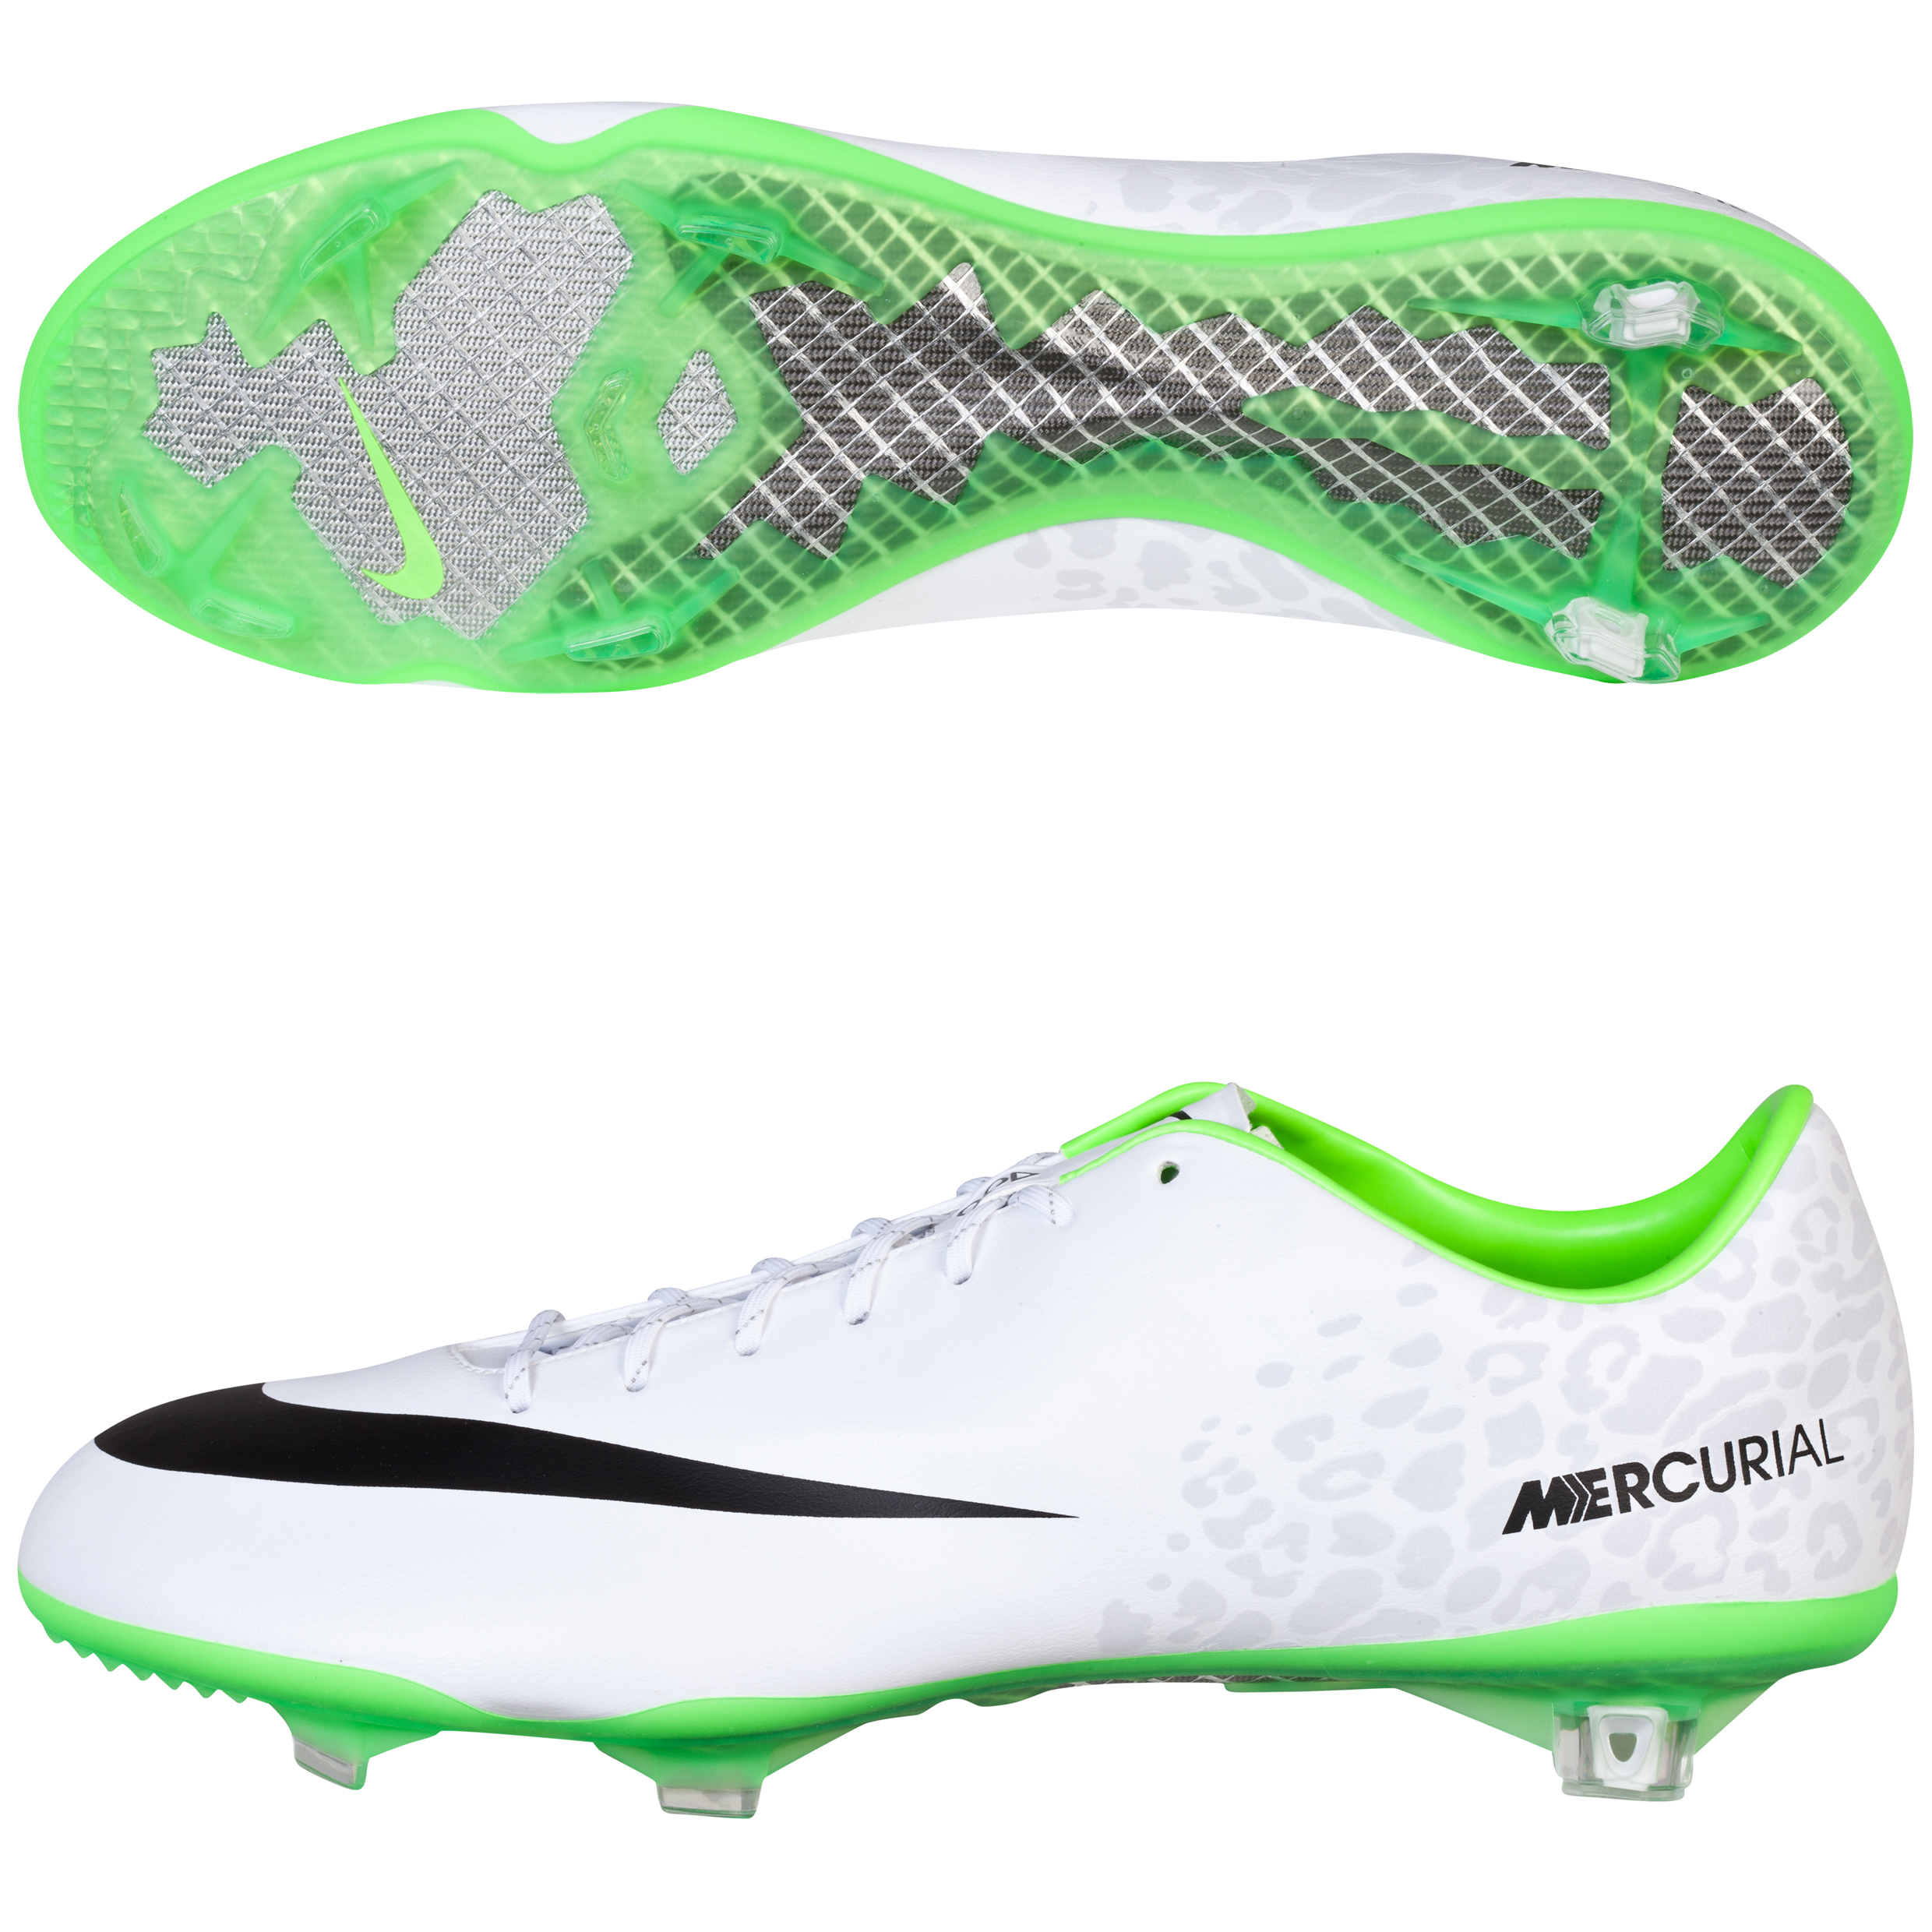 Nike Mercurial Vapor IX Firm Ground Football Boots White